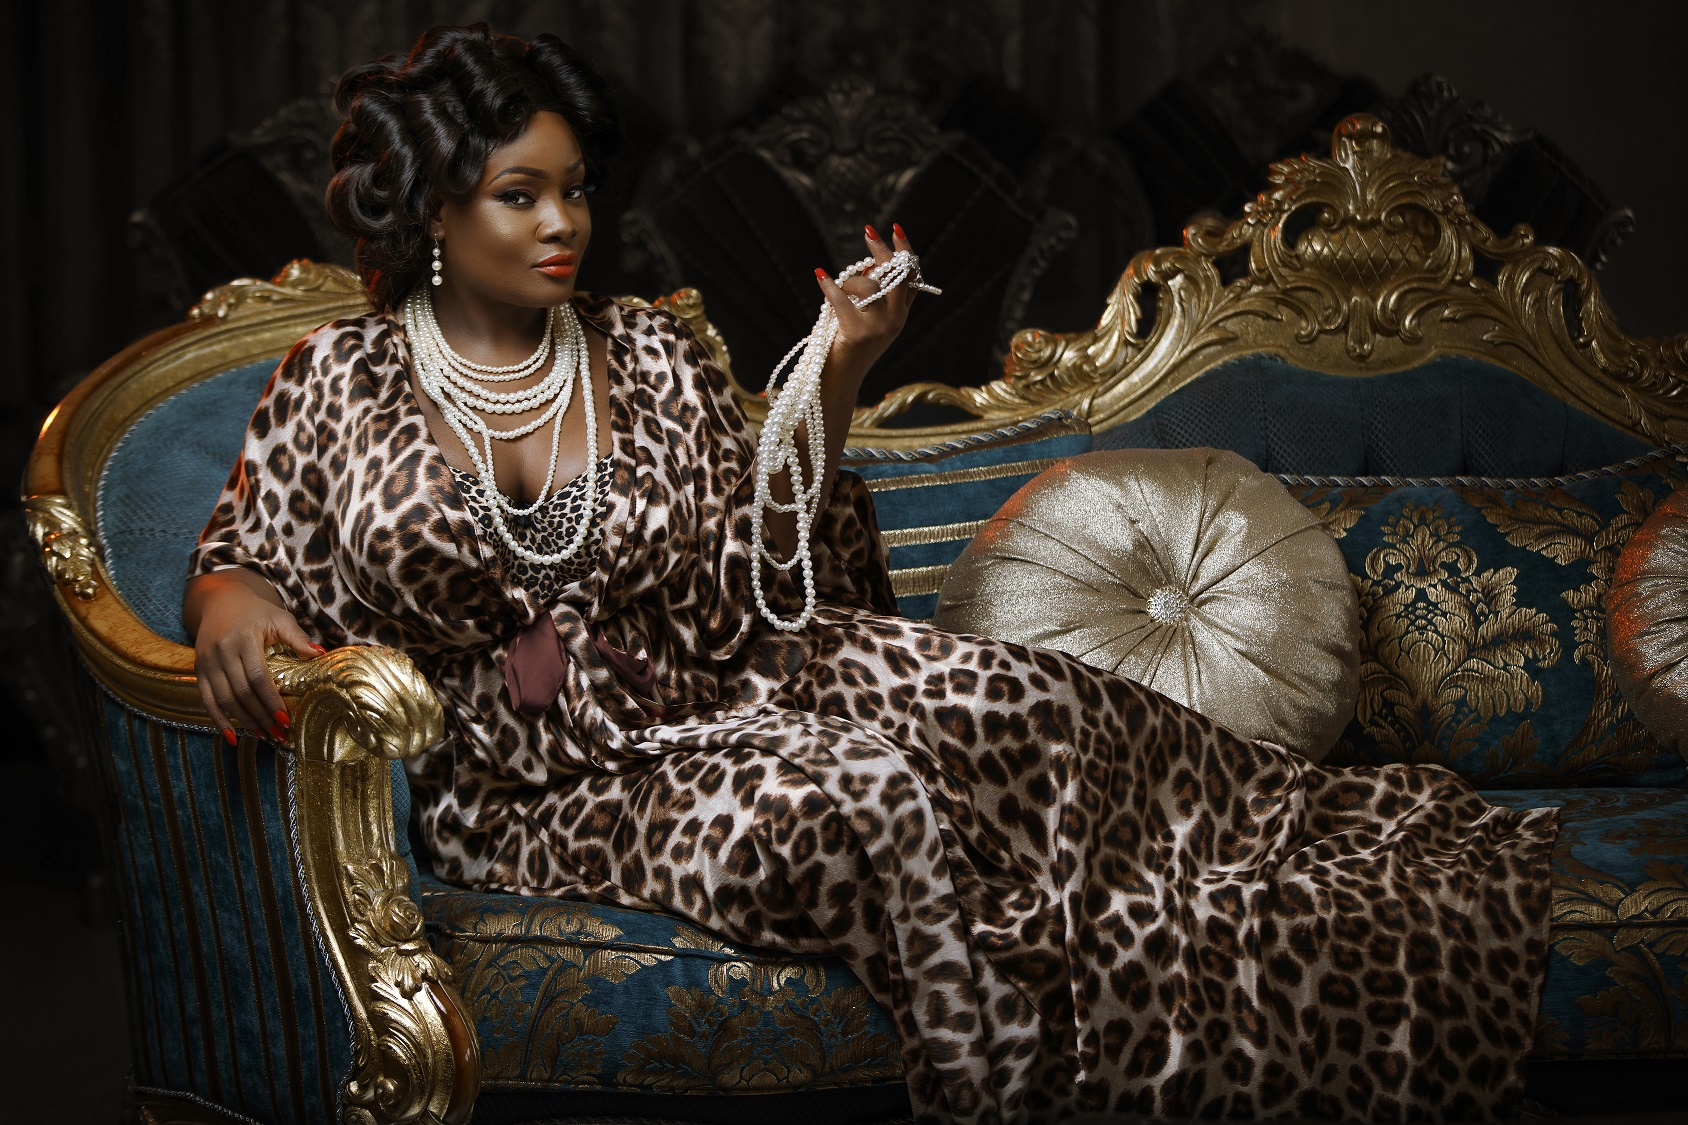 Toolz Warns About Being Forced Into Marriage